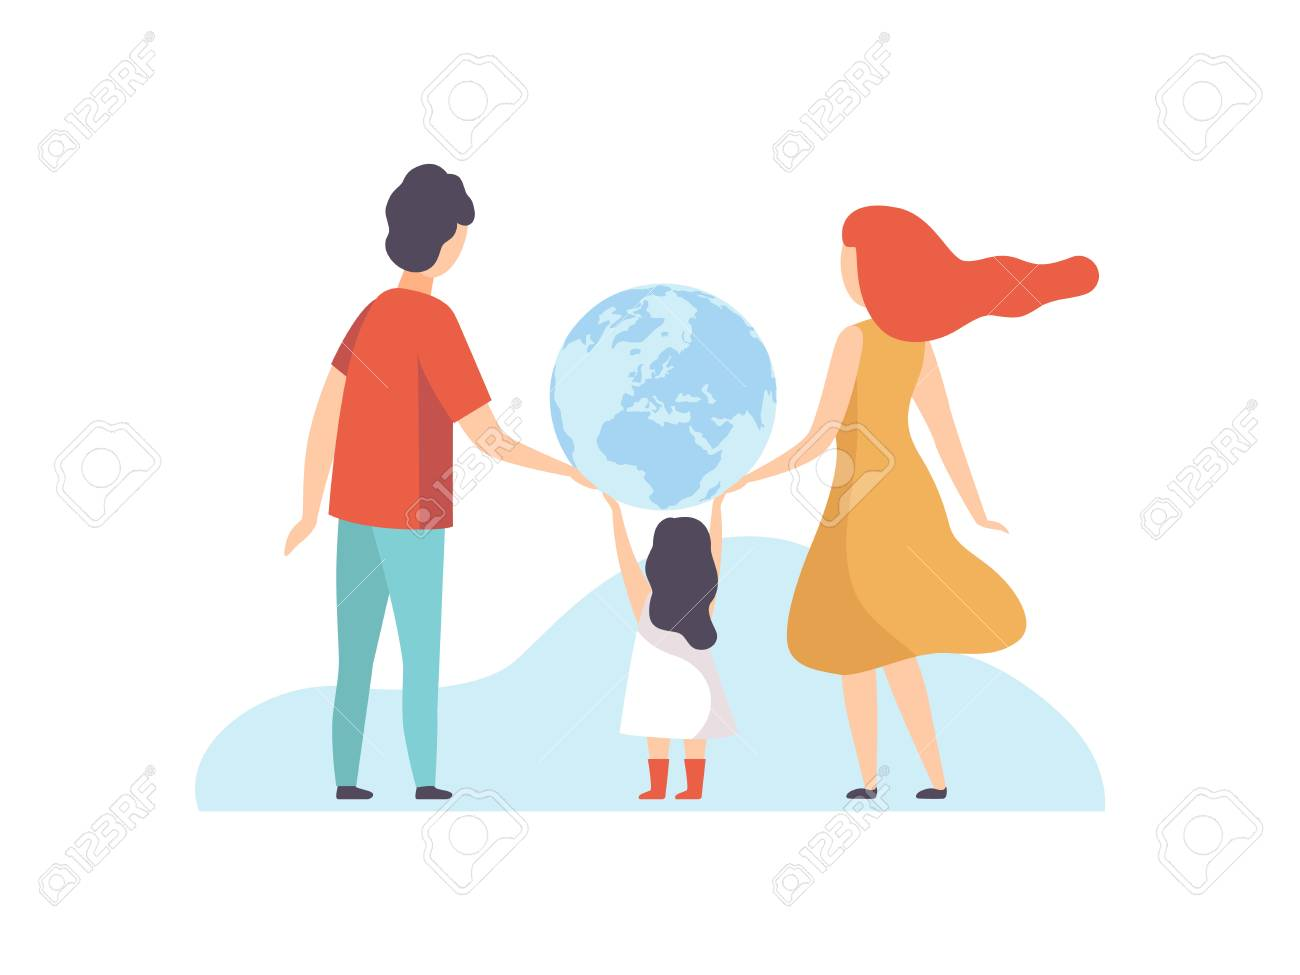 Family Holding Big Earth Globe, Mother, Father and Their Little Daughter with Terrestrial Globe, Back View Vector Illustration on White Background. - 128164228